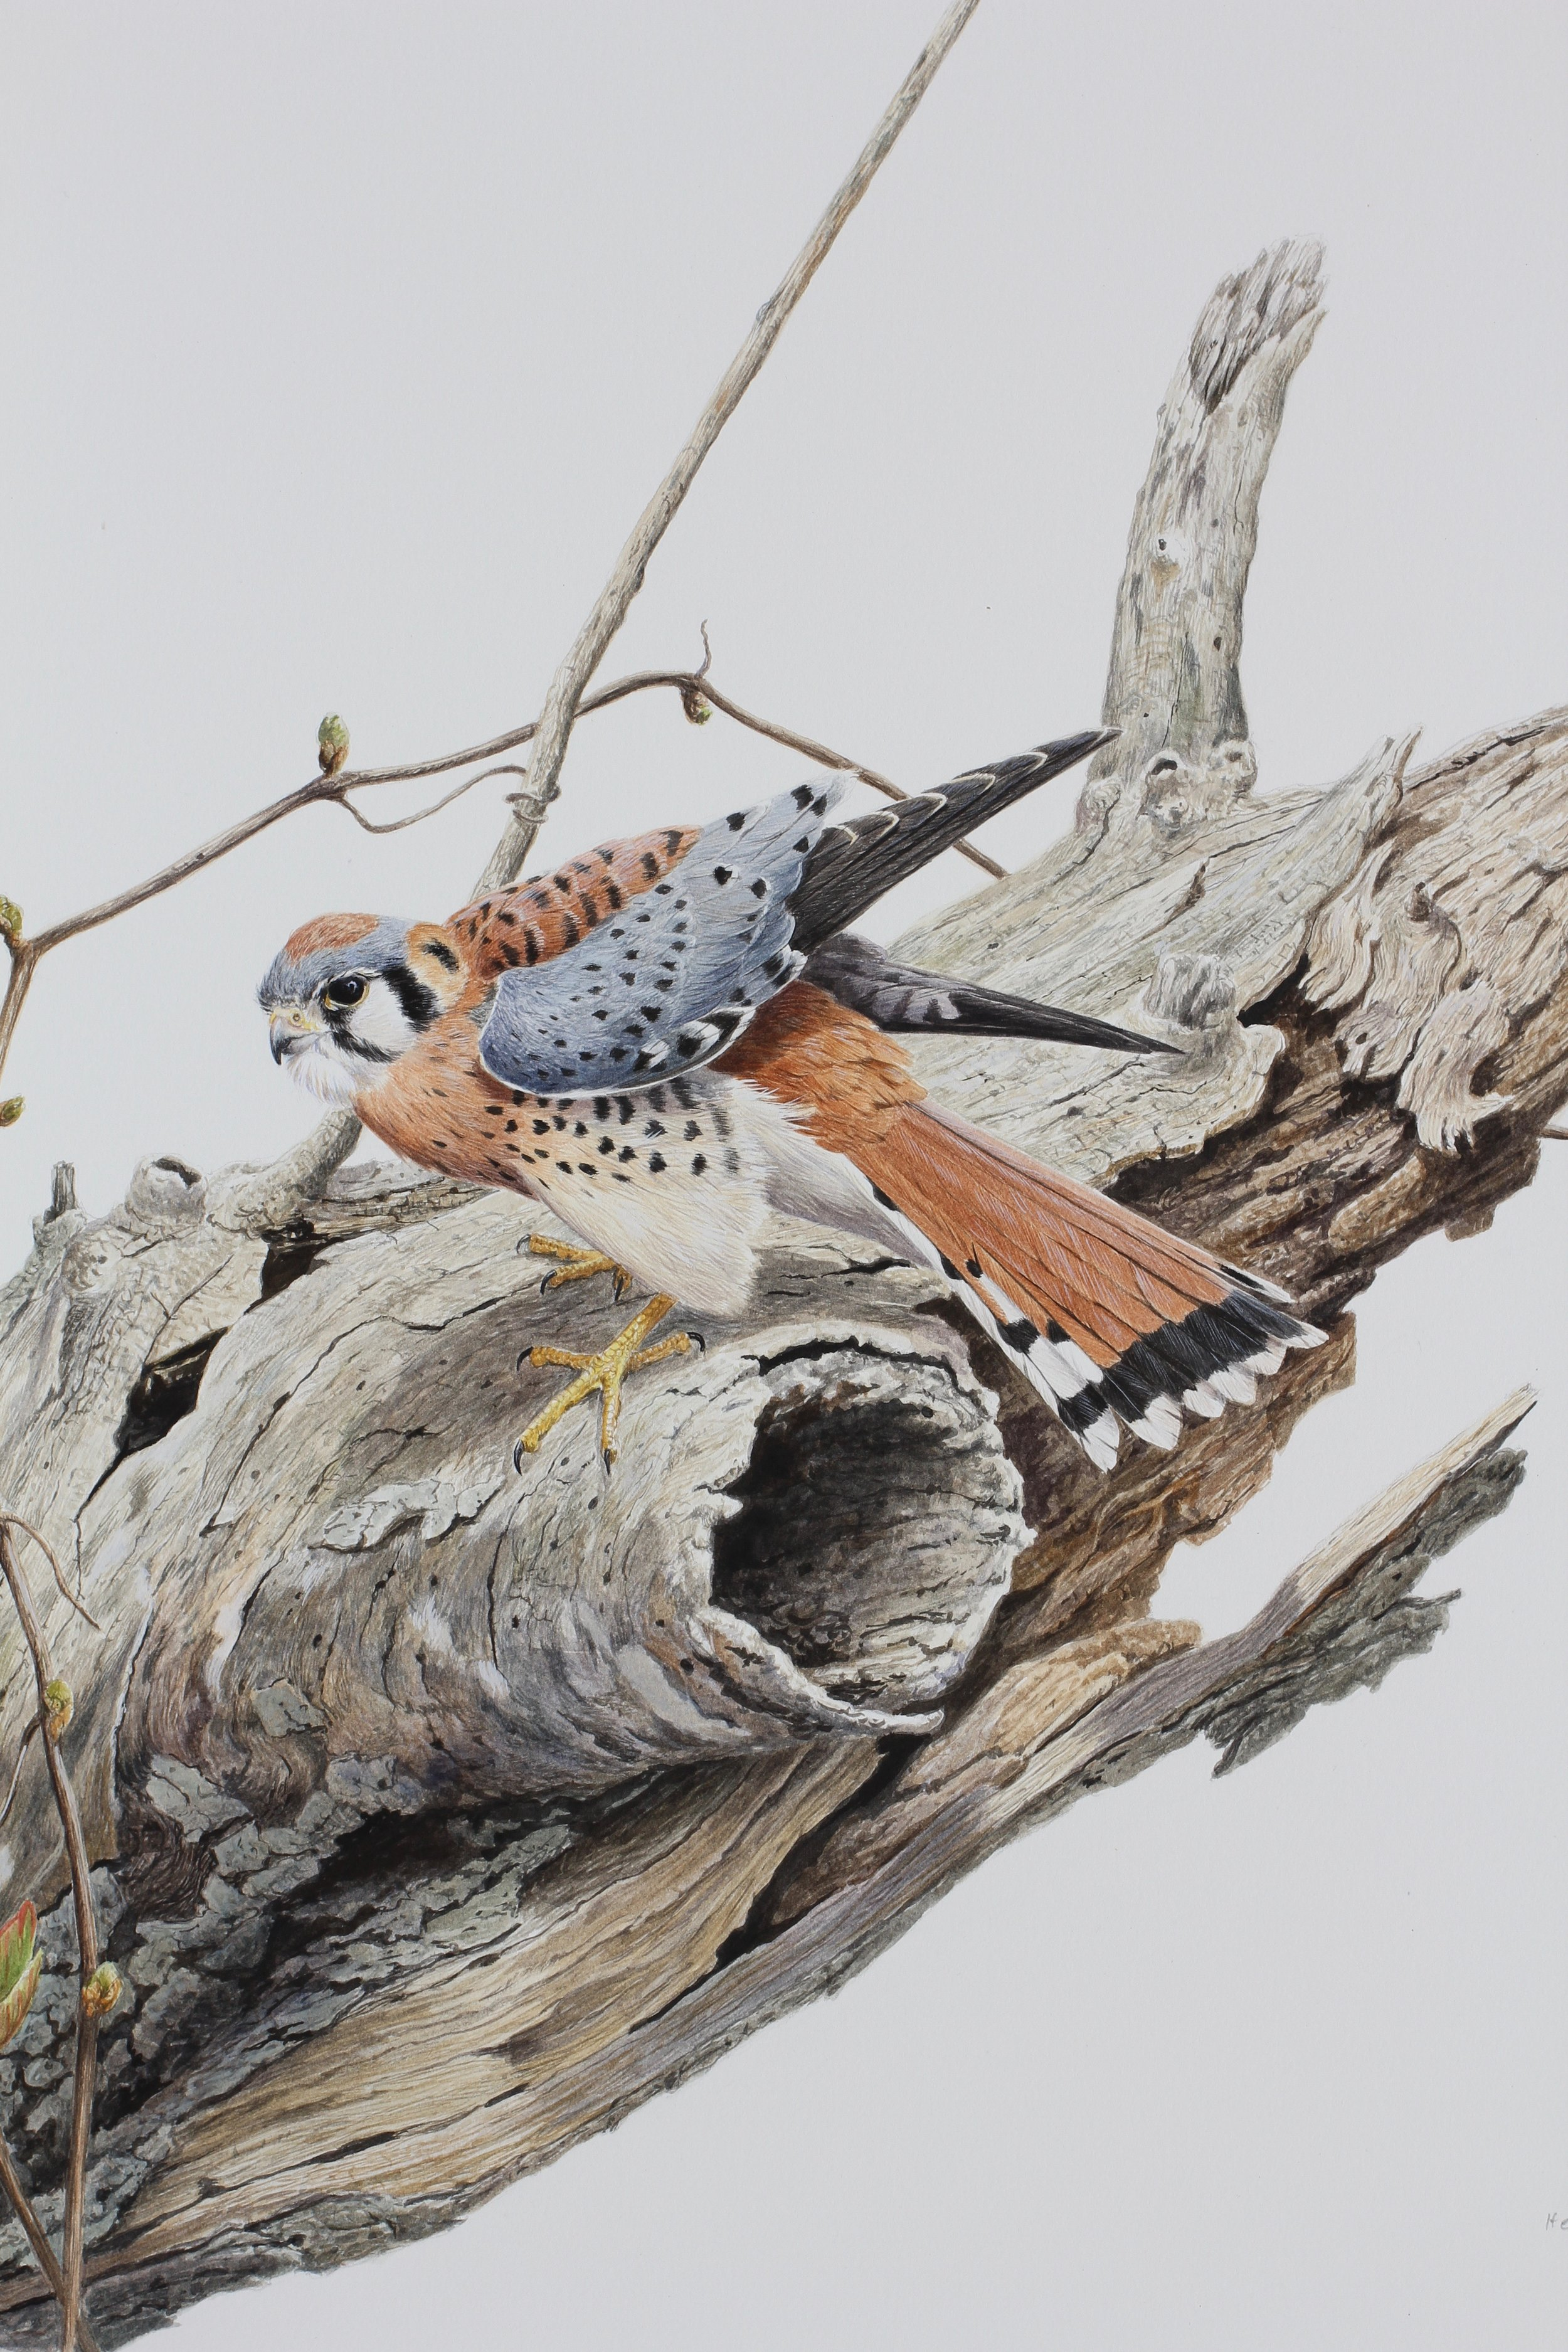 aBOUT - Tony Henneberg paints in various media, primarily watercolor and oils.Born in Germany, raised in Zimbabwe, and educated in South Africa, Tony Henneberg grew up in rural settings where he developed the keen interest in the wildlife surrounding him wherever he goes.